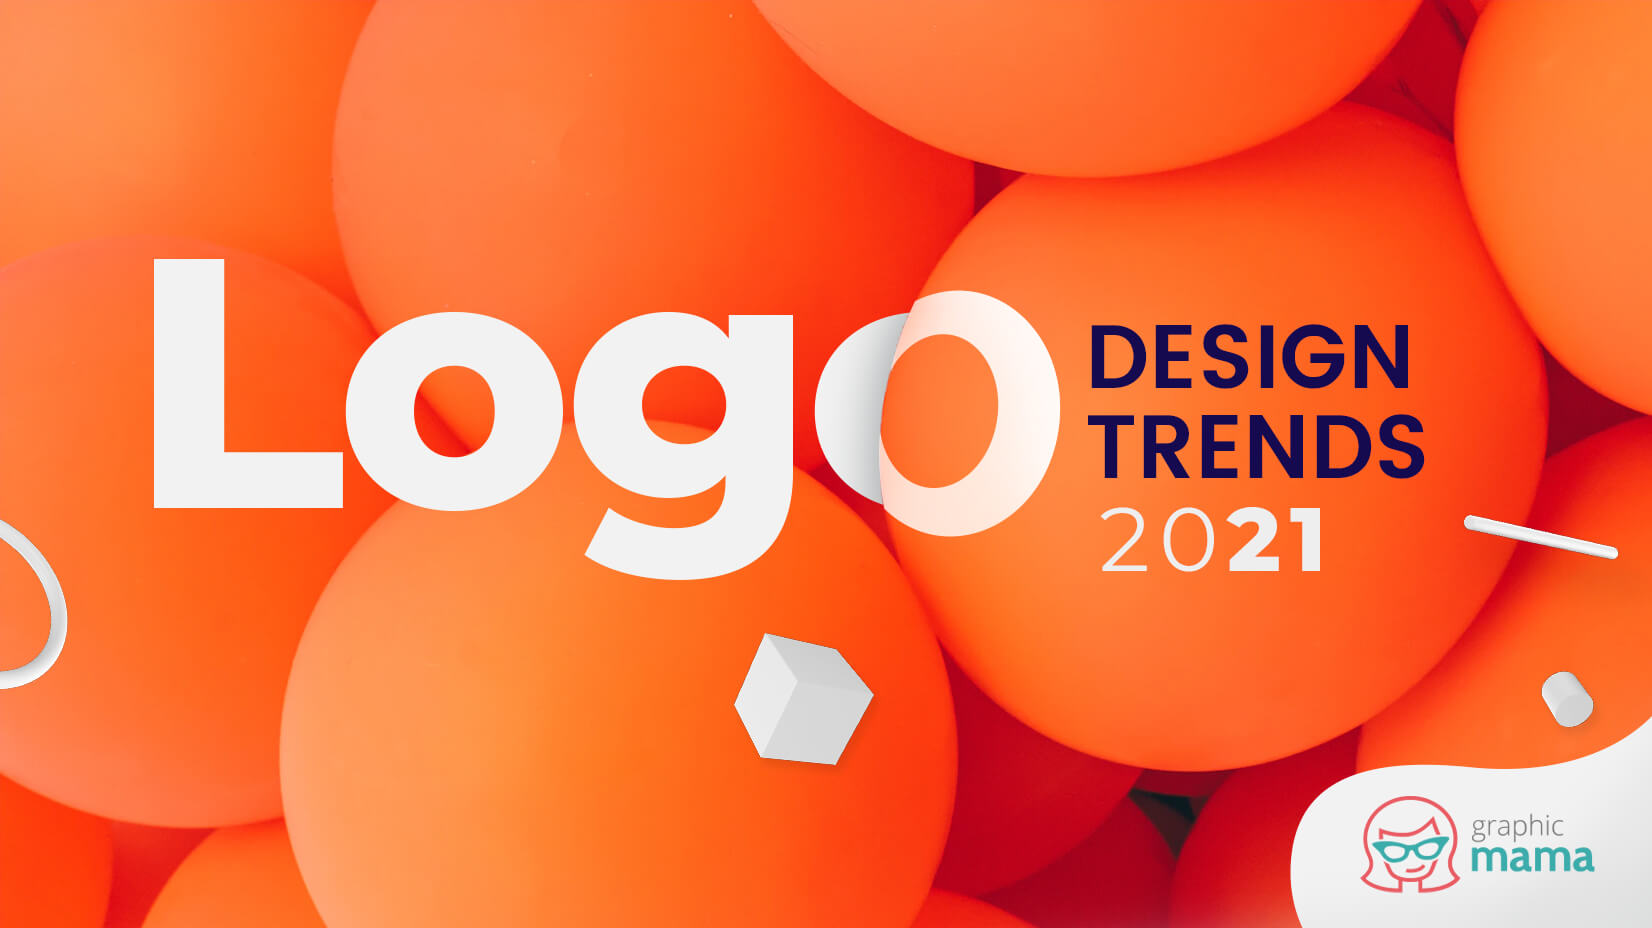 Logo-Design-Trends-2021.